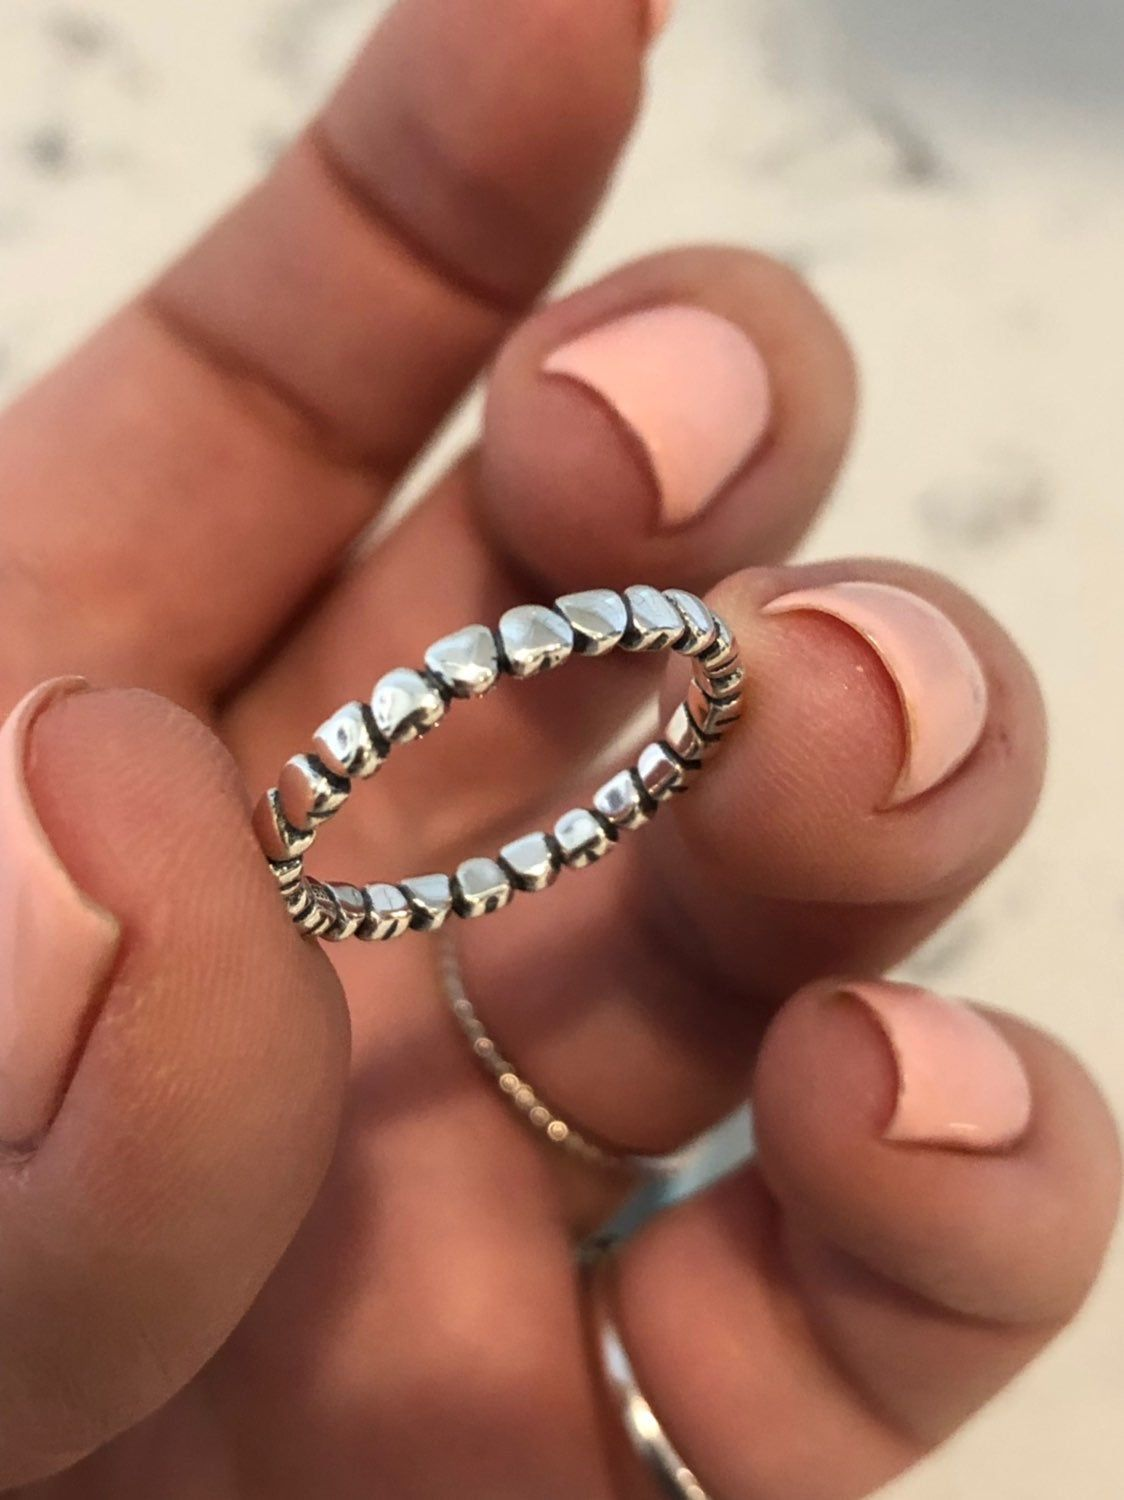 Will Sterling Silver Turn My Finger Green : sterling, silver, finger, green, Brand, New//, Price, Firm!!, Solid, Sterling, Silver, Finger, Green, Rust), 6,7,8, Avail…, Rings,, Silver,